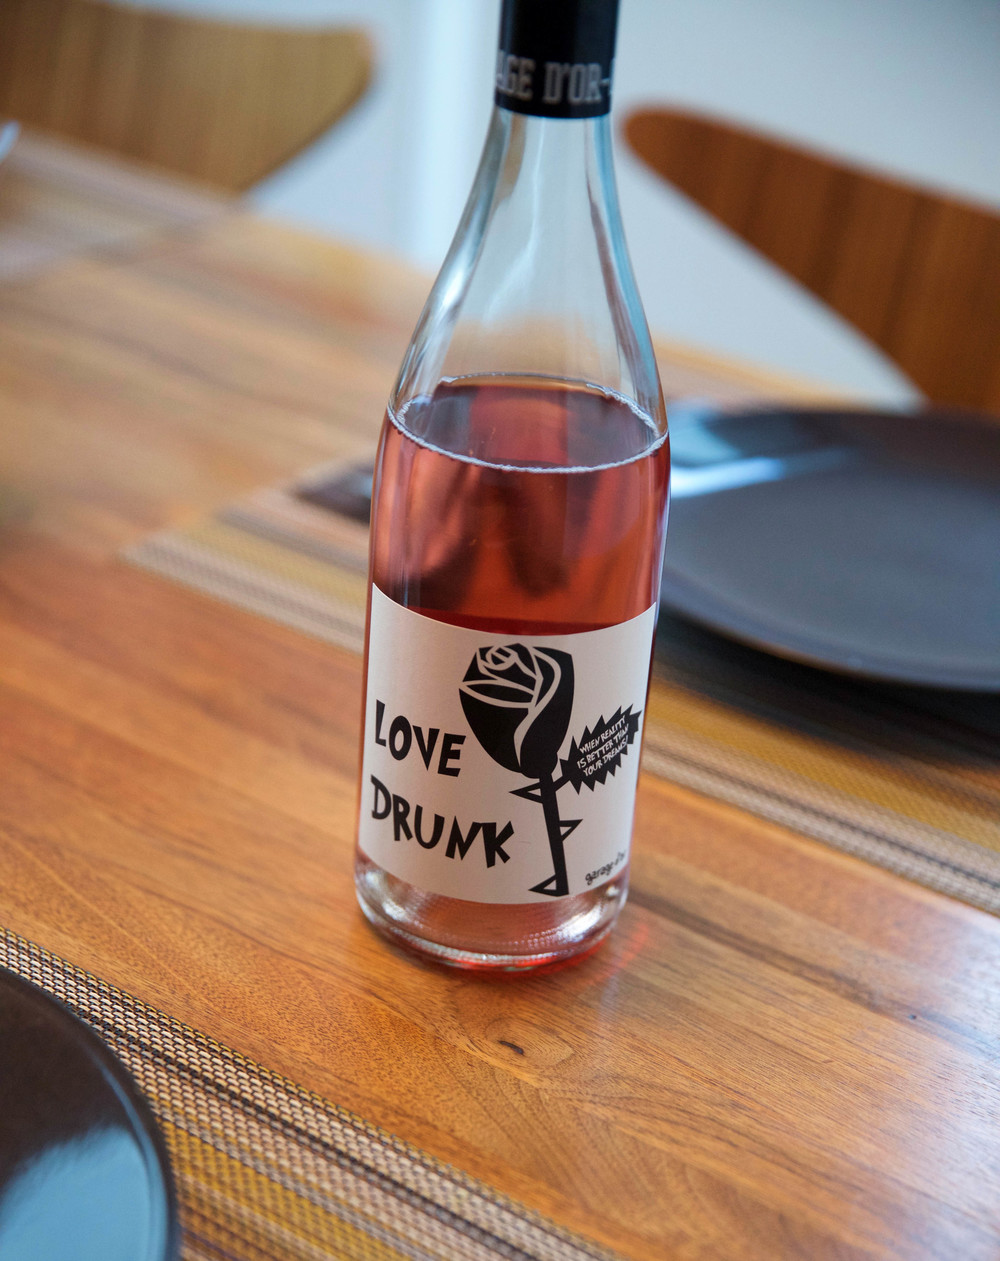 LaurenSchwaiger-Life-Style-Blog-Love-Drunk-Rose-Wine.jpg